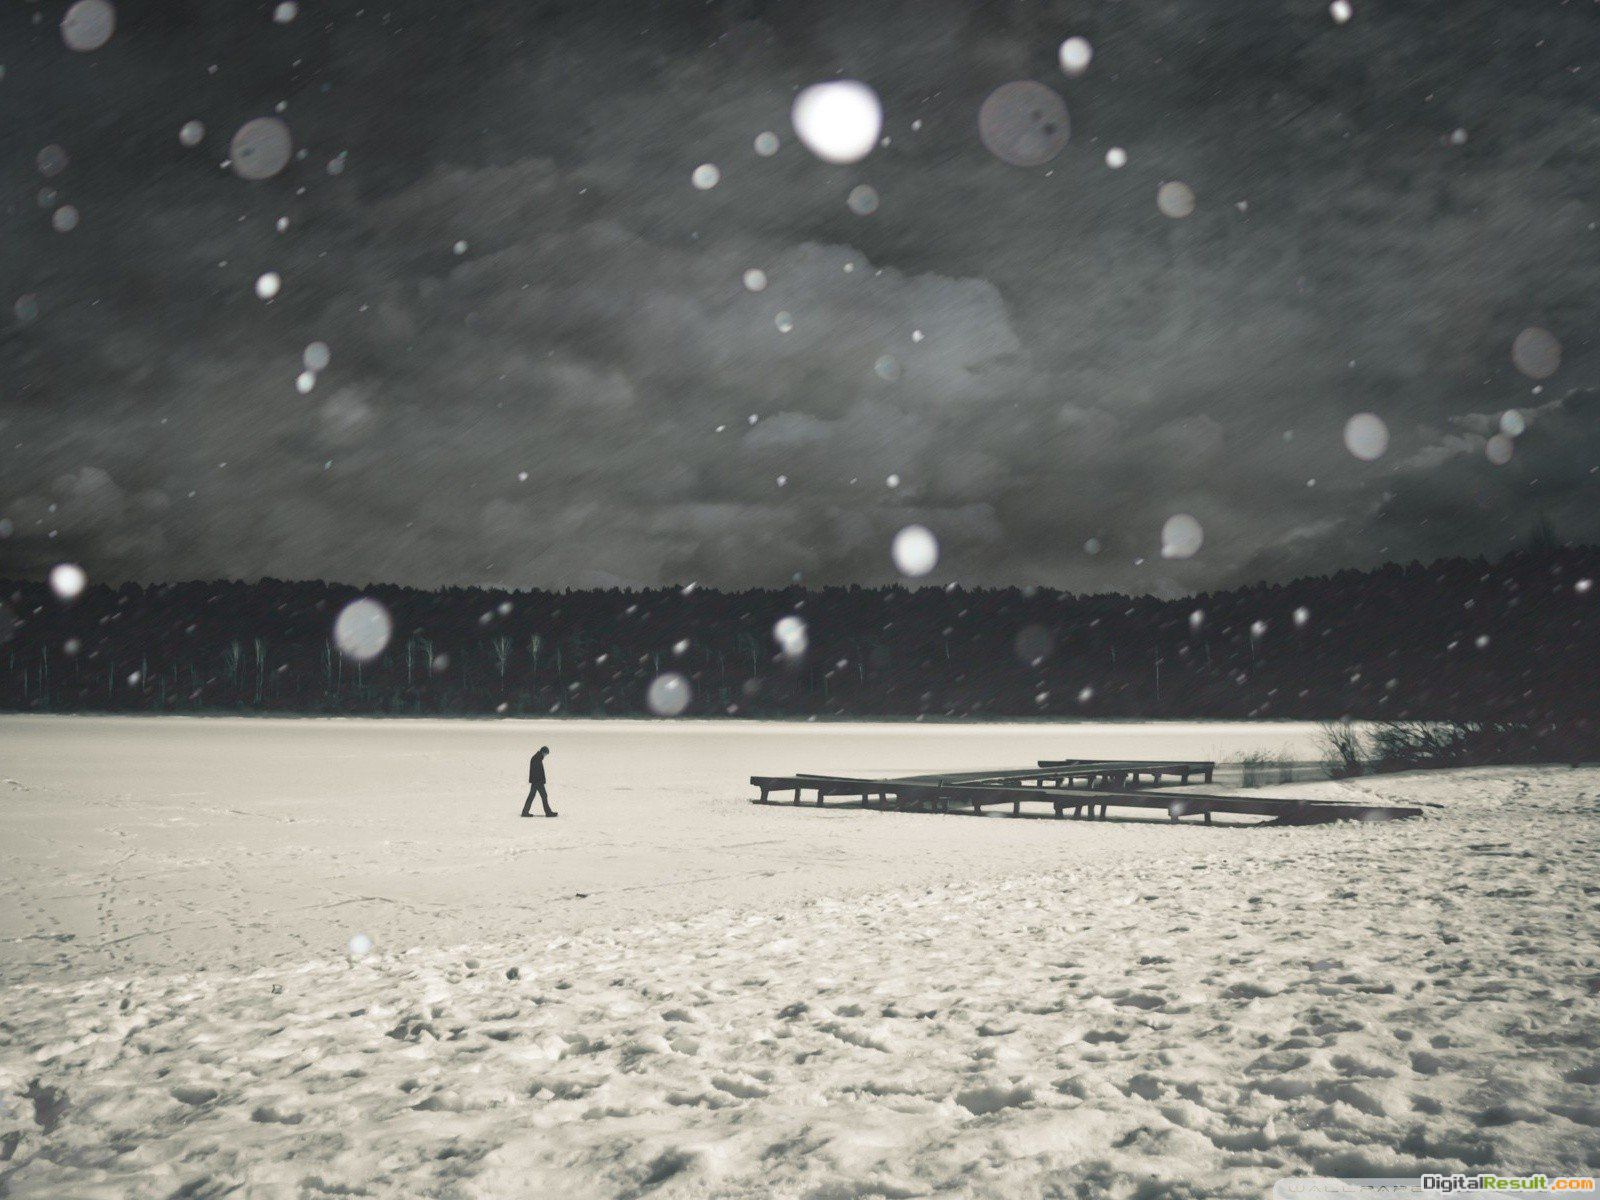 Winter love lonely love quotes wallpaper | 1600x1200 | 237607 792